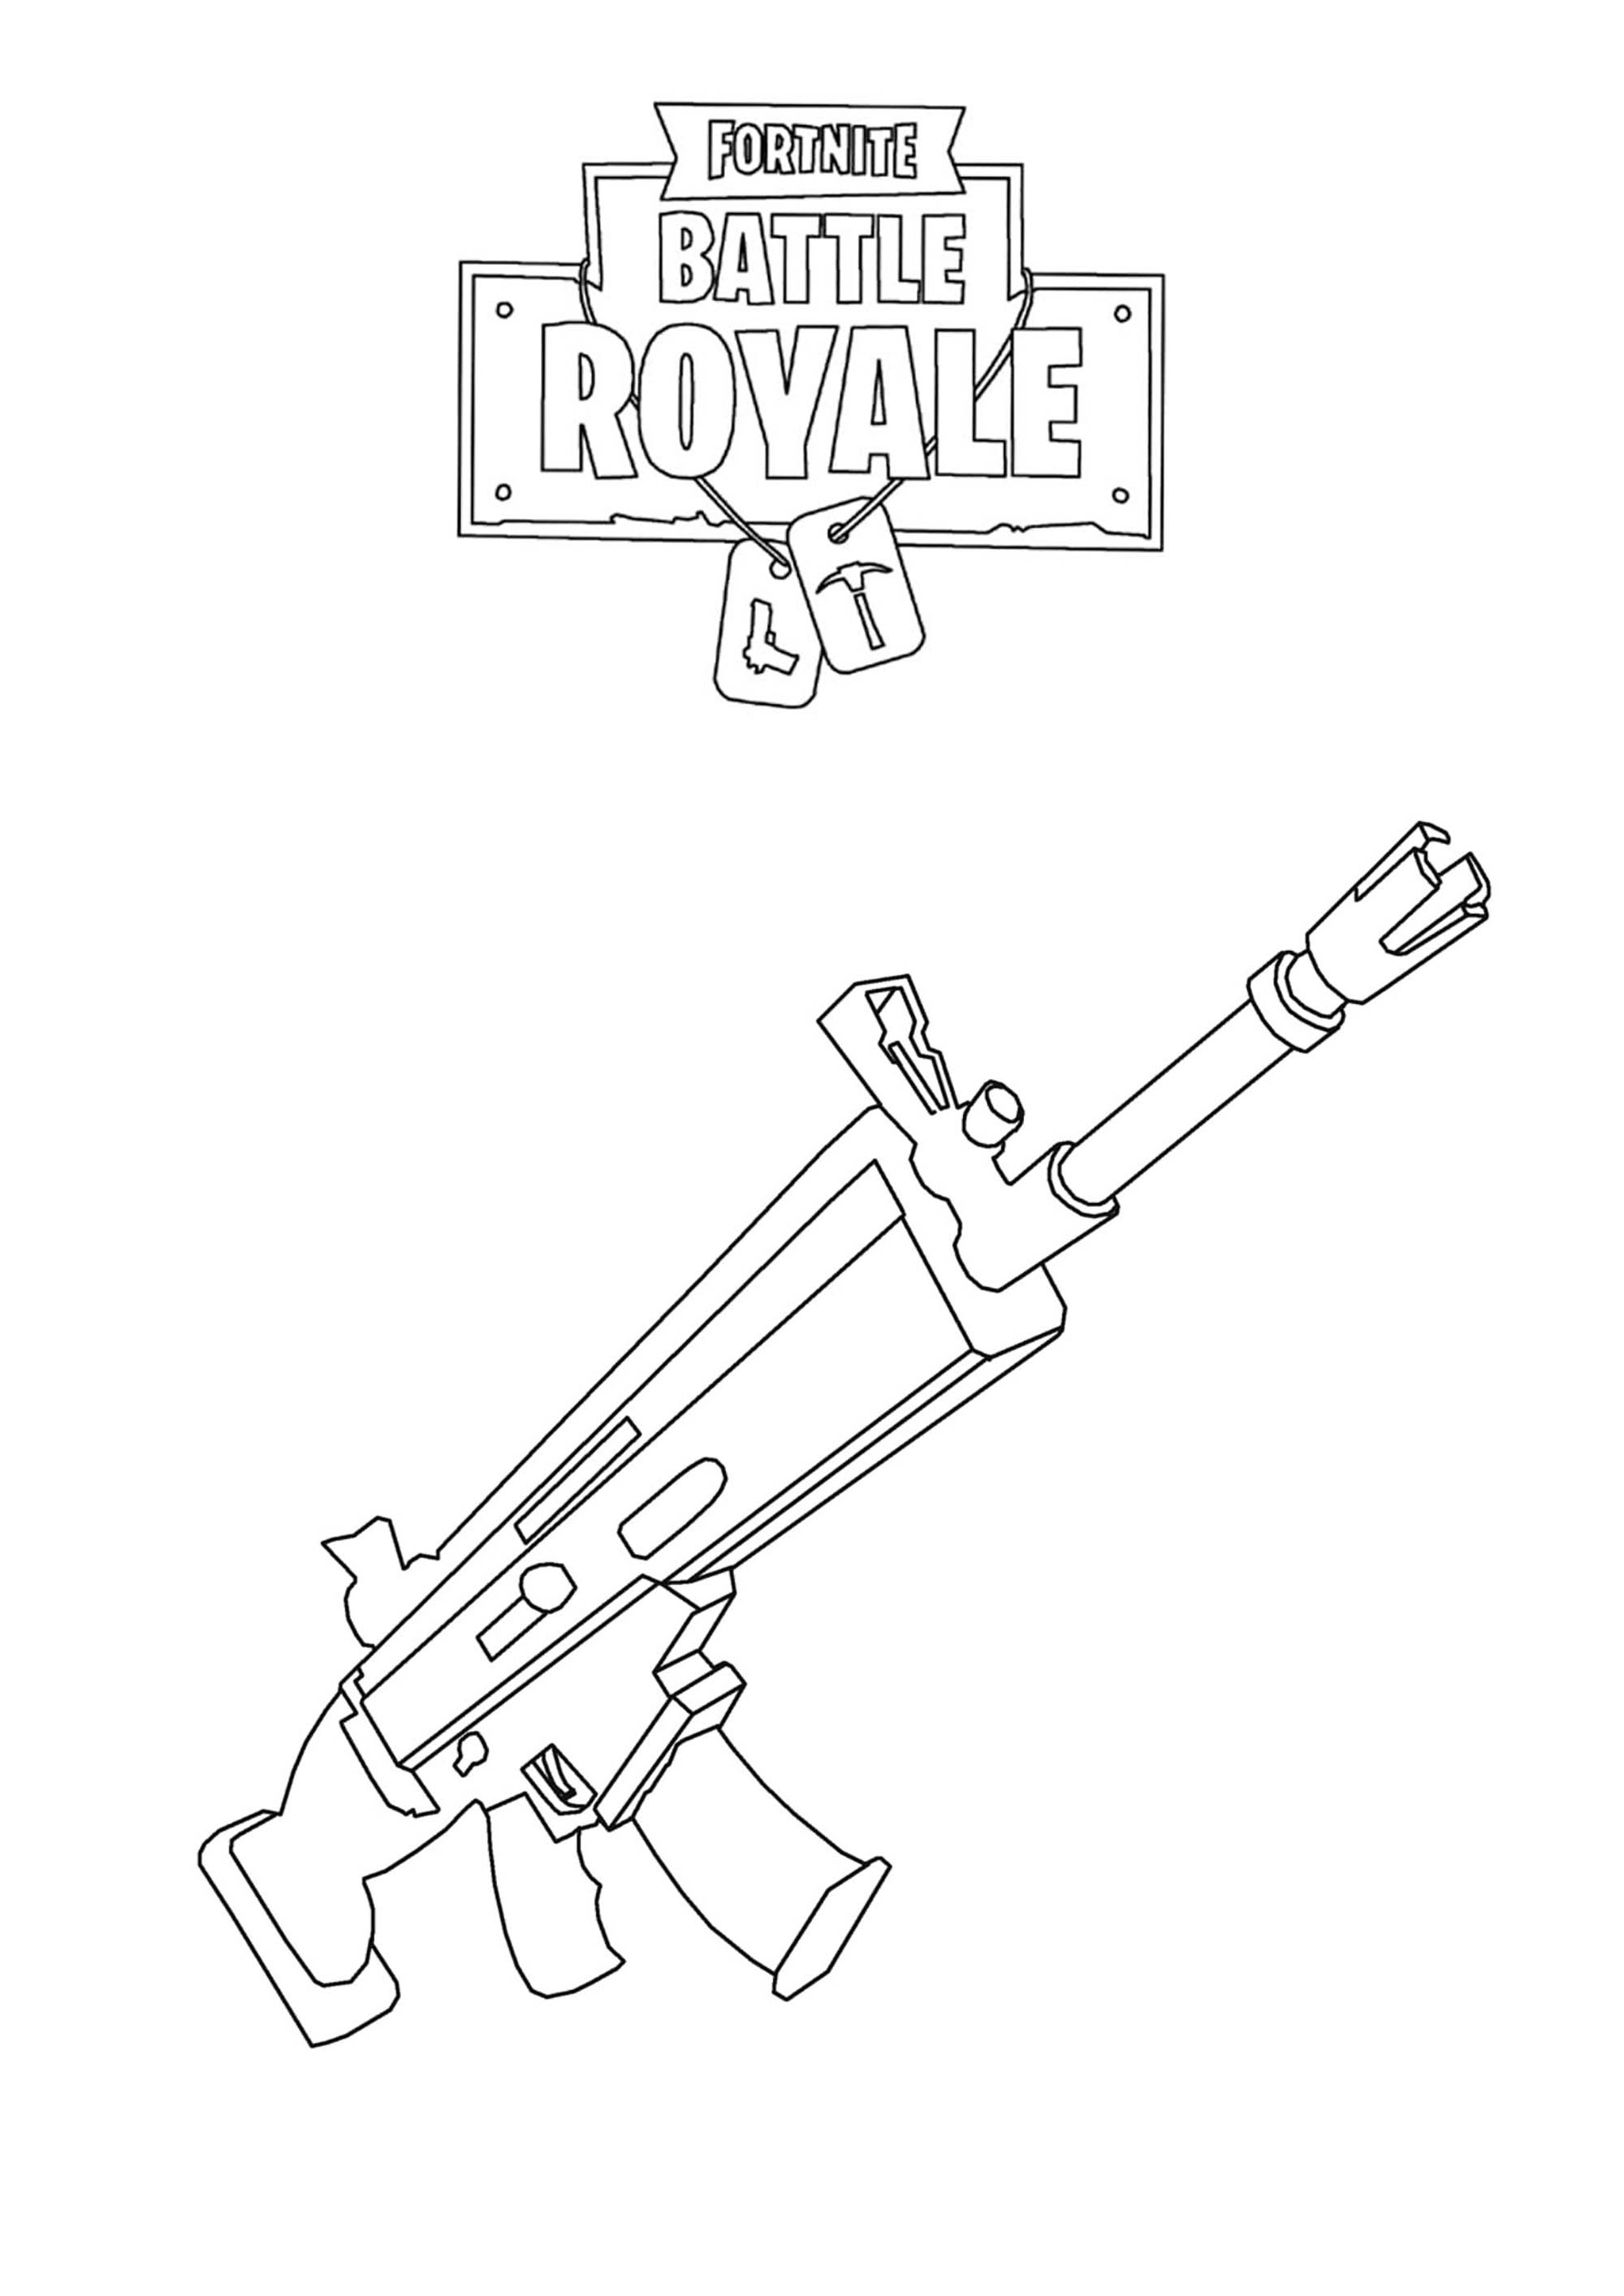 Fortnite Battle Royale Scar H Fortnite Battle Royale